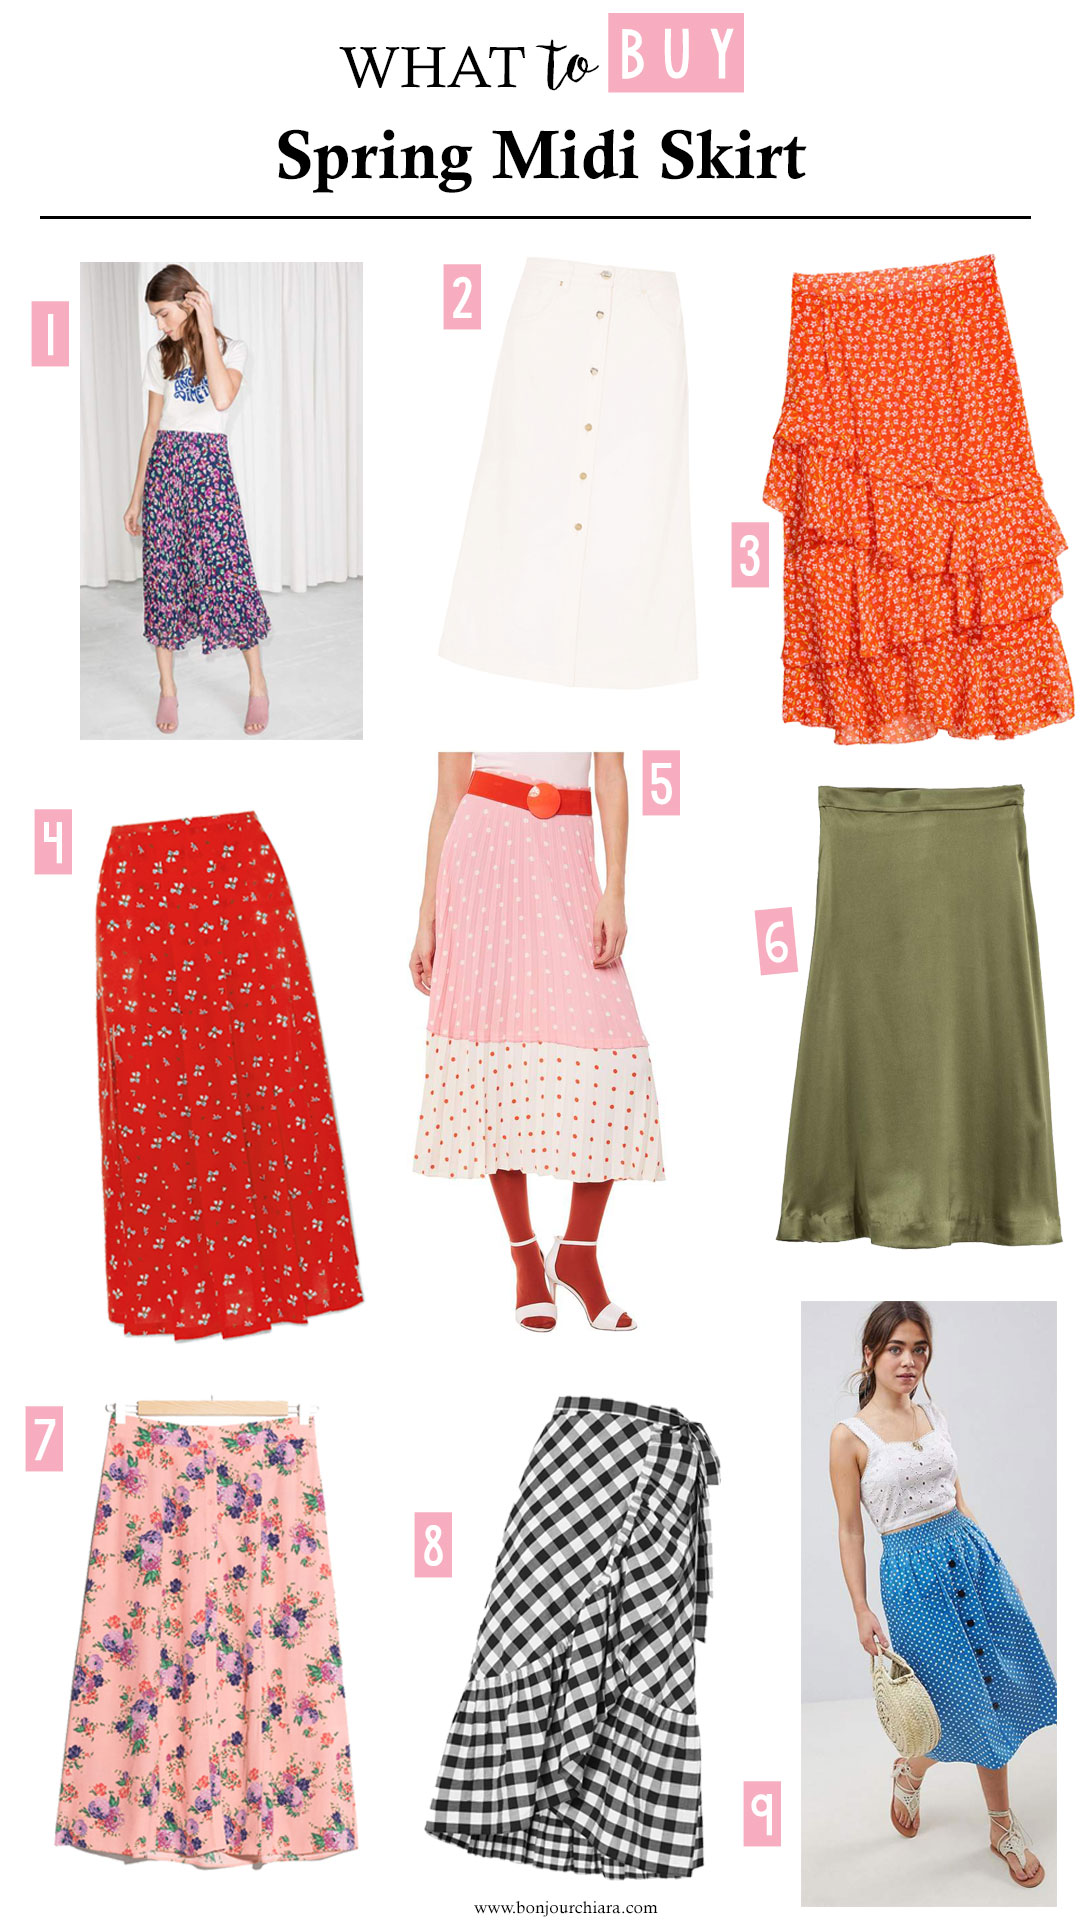 What to Buy : Spring Midi Skirts